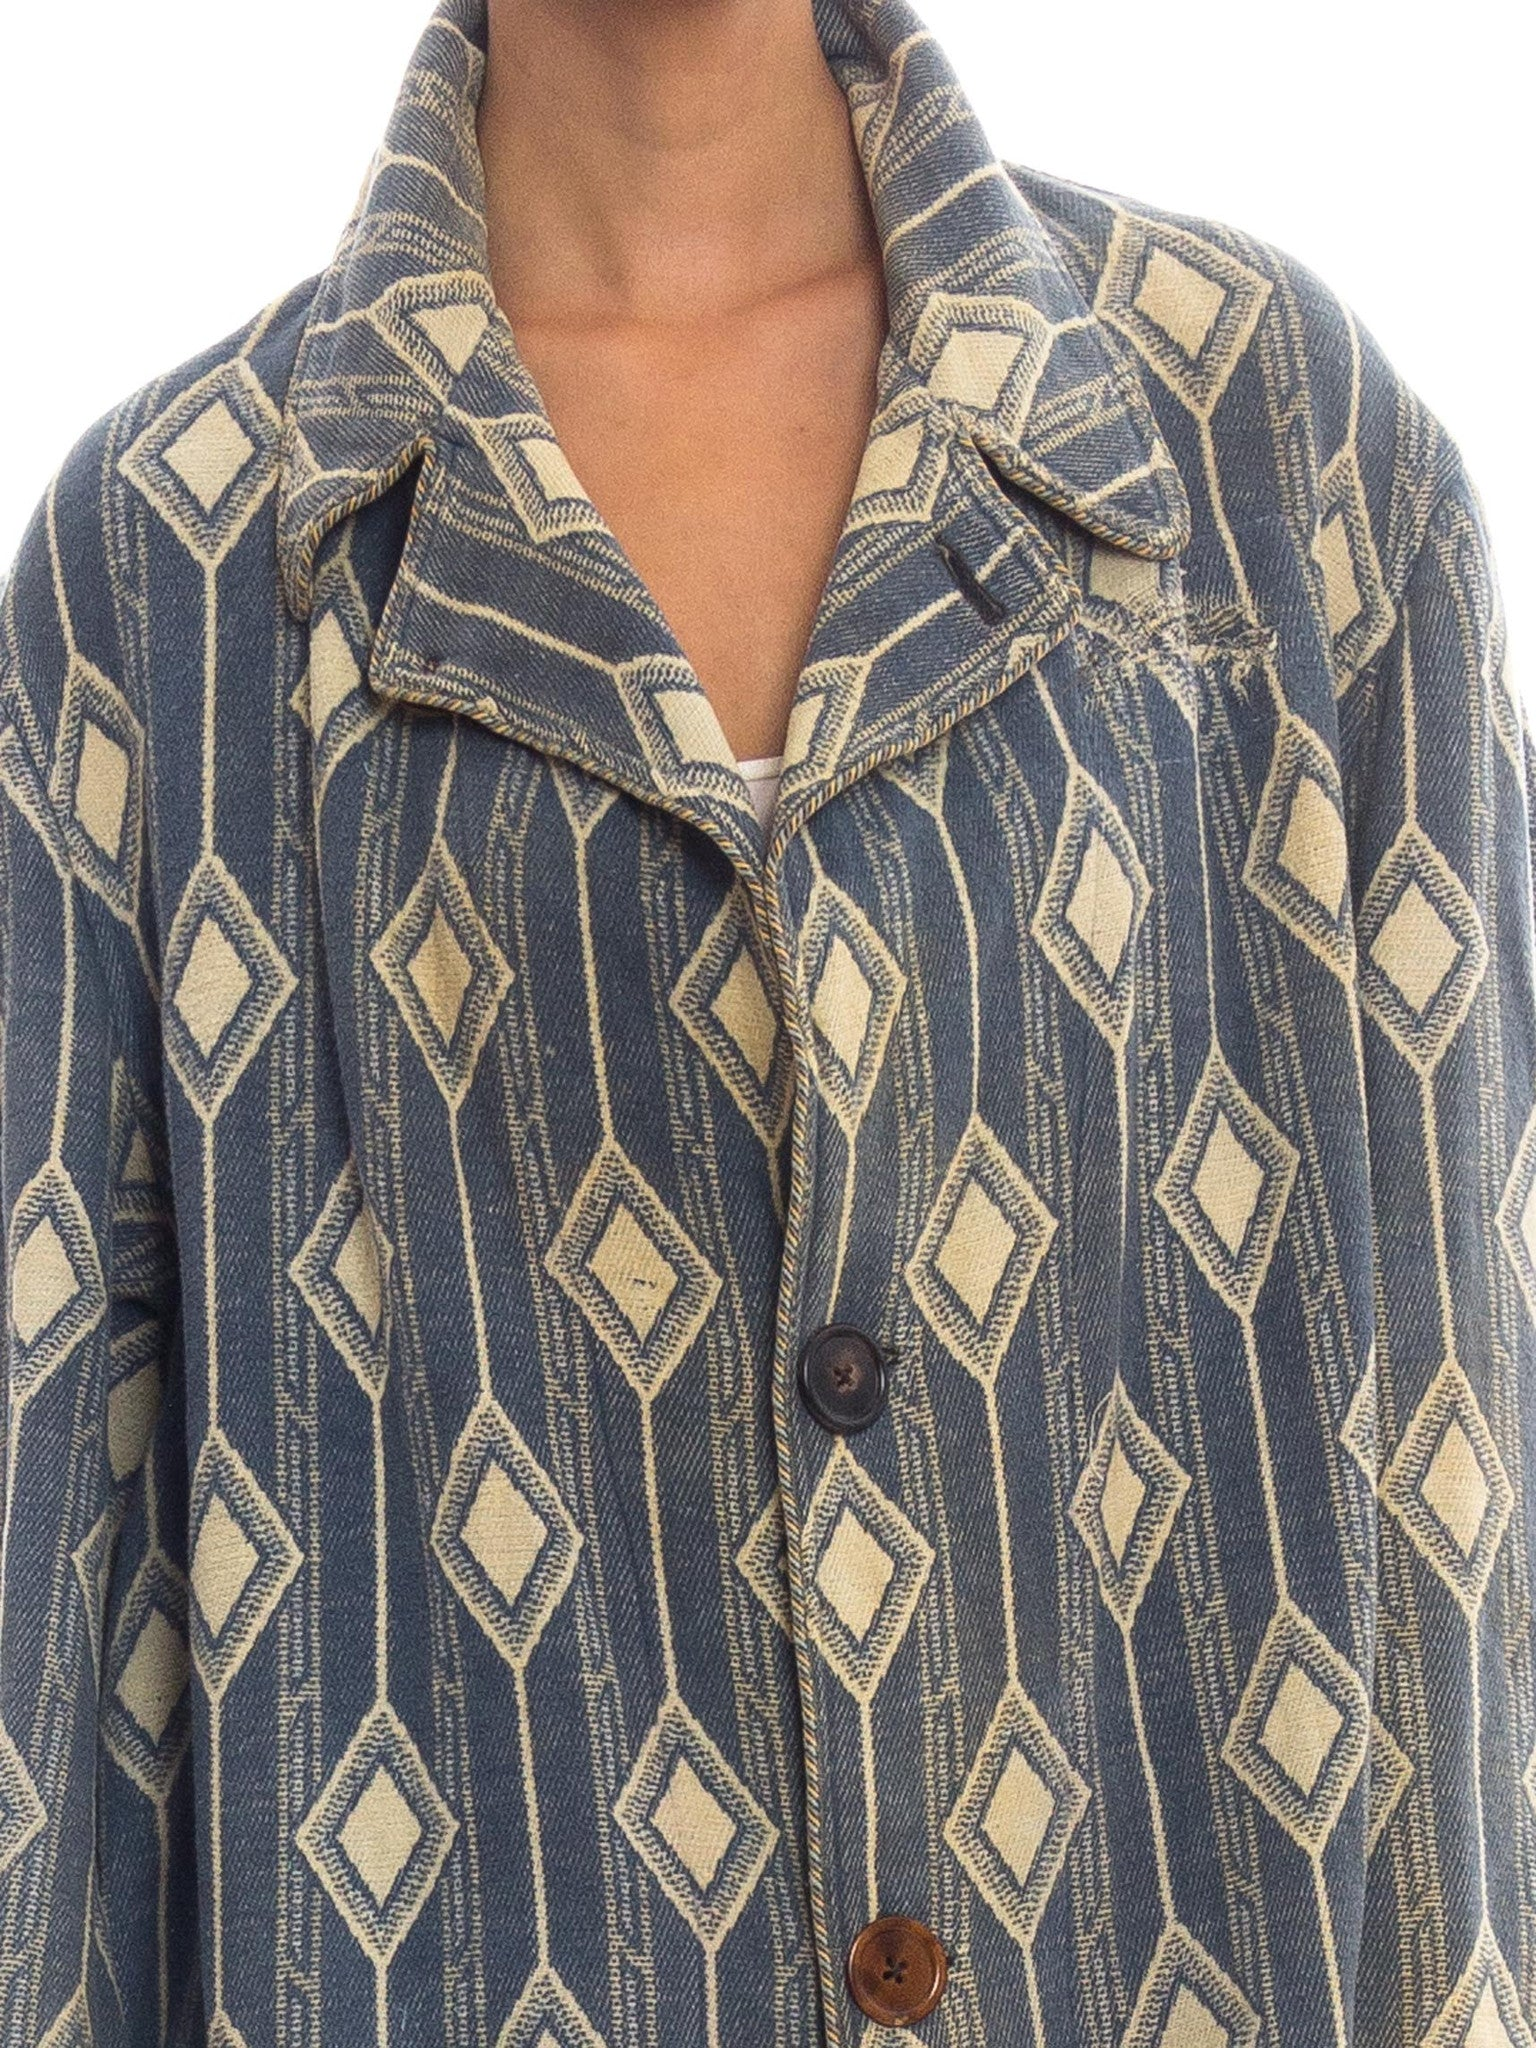 Edwardian POMEROY's INC Blue & White Wool/Cotton Brocade Men's Antique Blanket Coat With Cool Repairs Patina